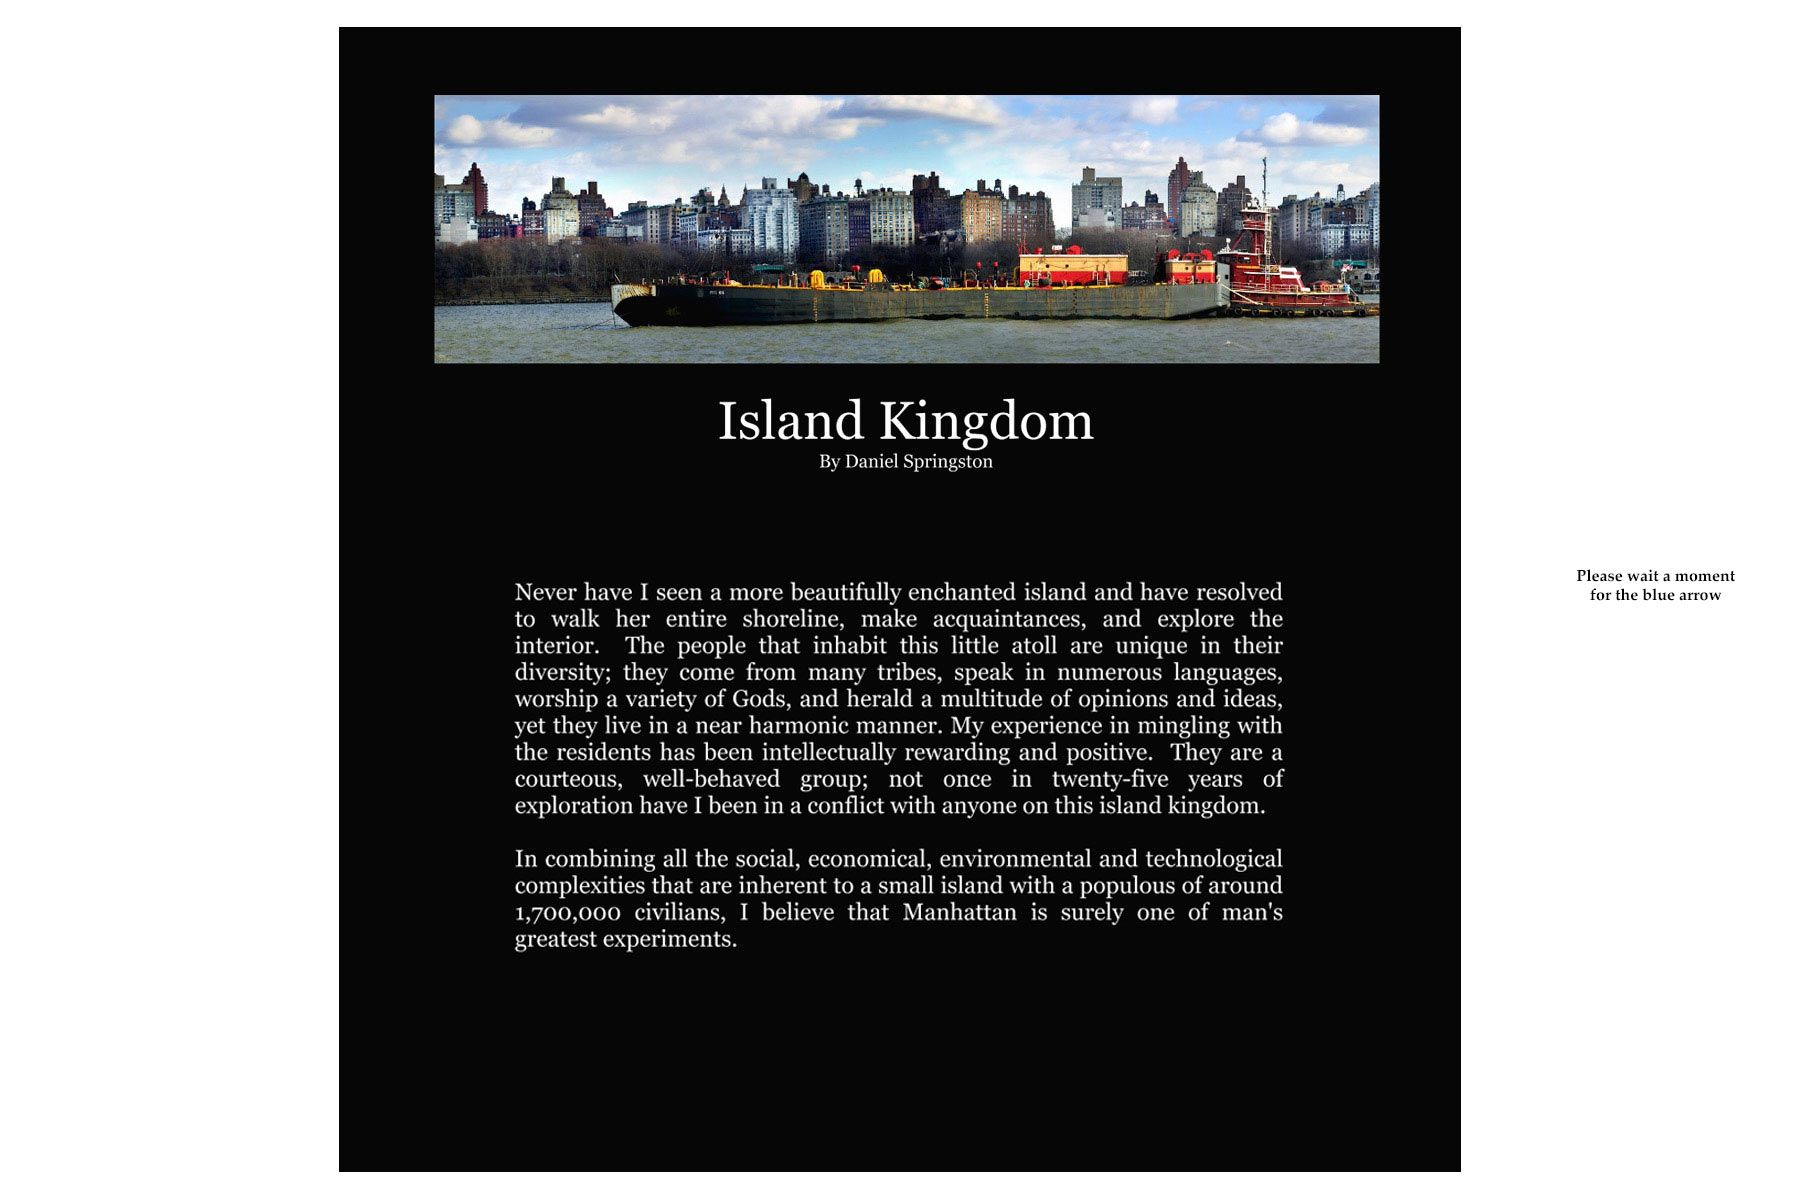 Island-Kingdom-Naration1.jpg